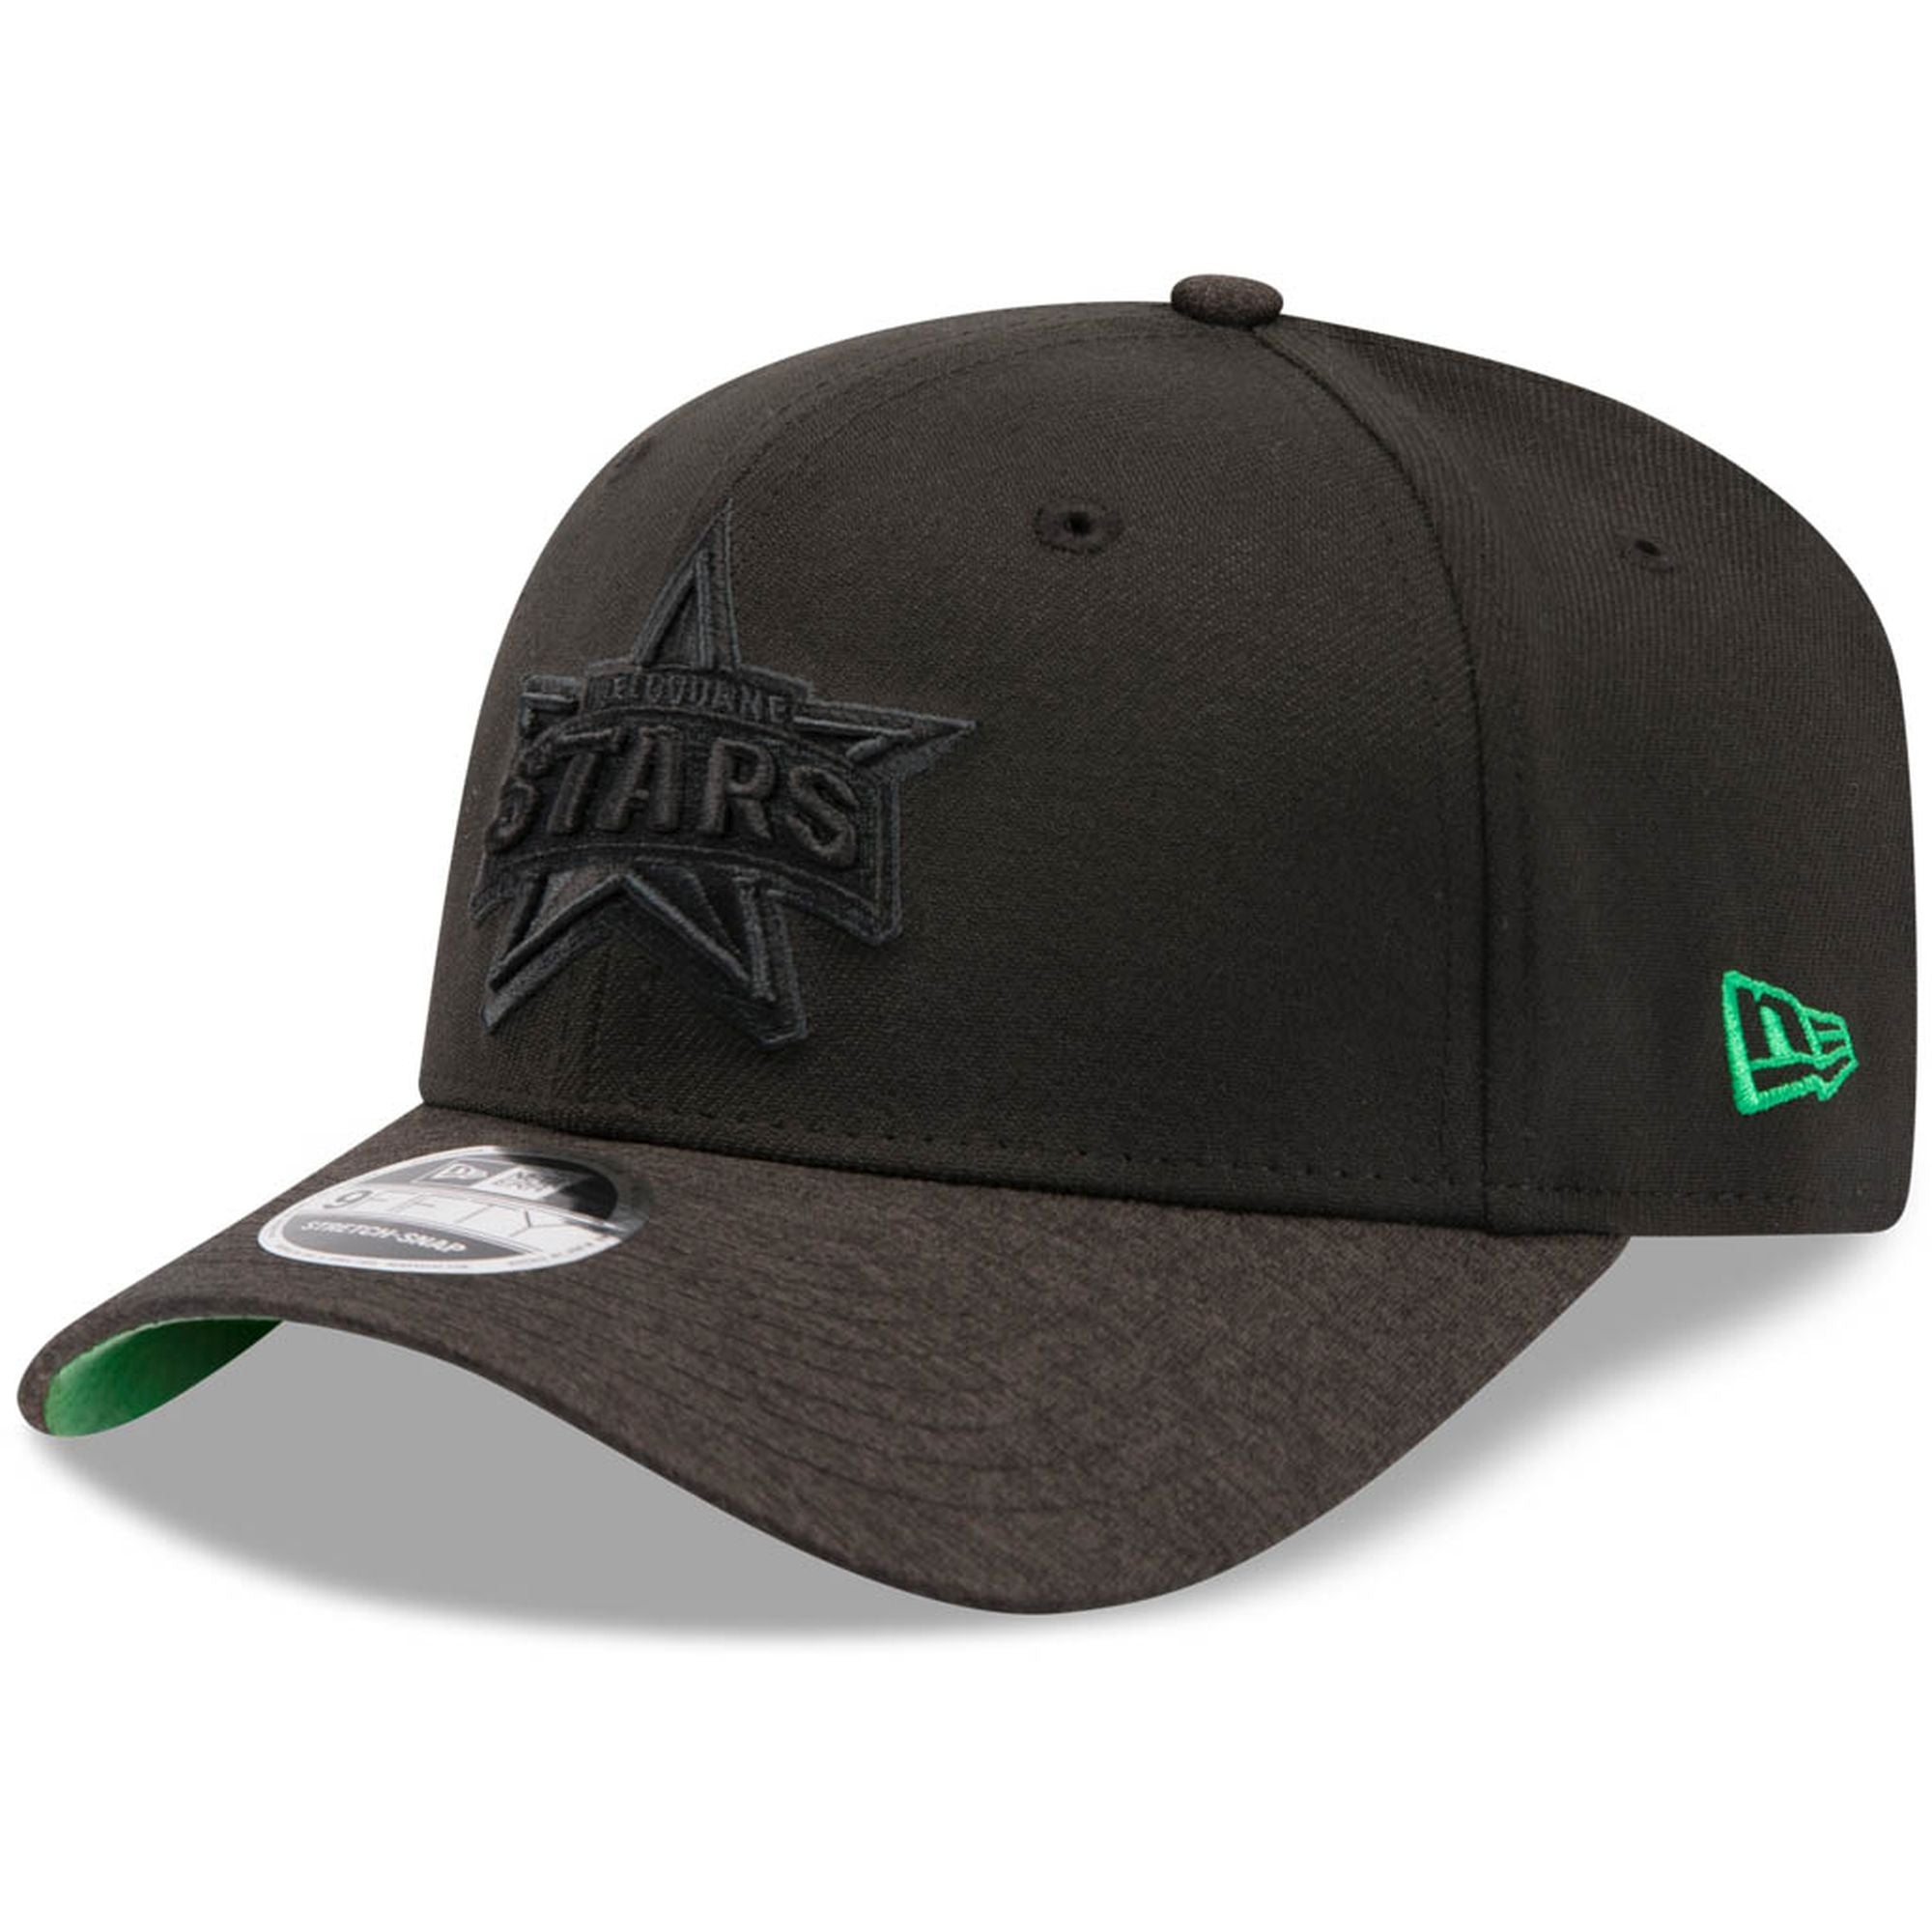 450566c1be7 BBL - Melbourne Stars 9FiftySS New Era Home Cap – The Cricket Warehouse